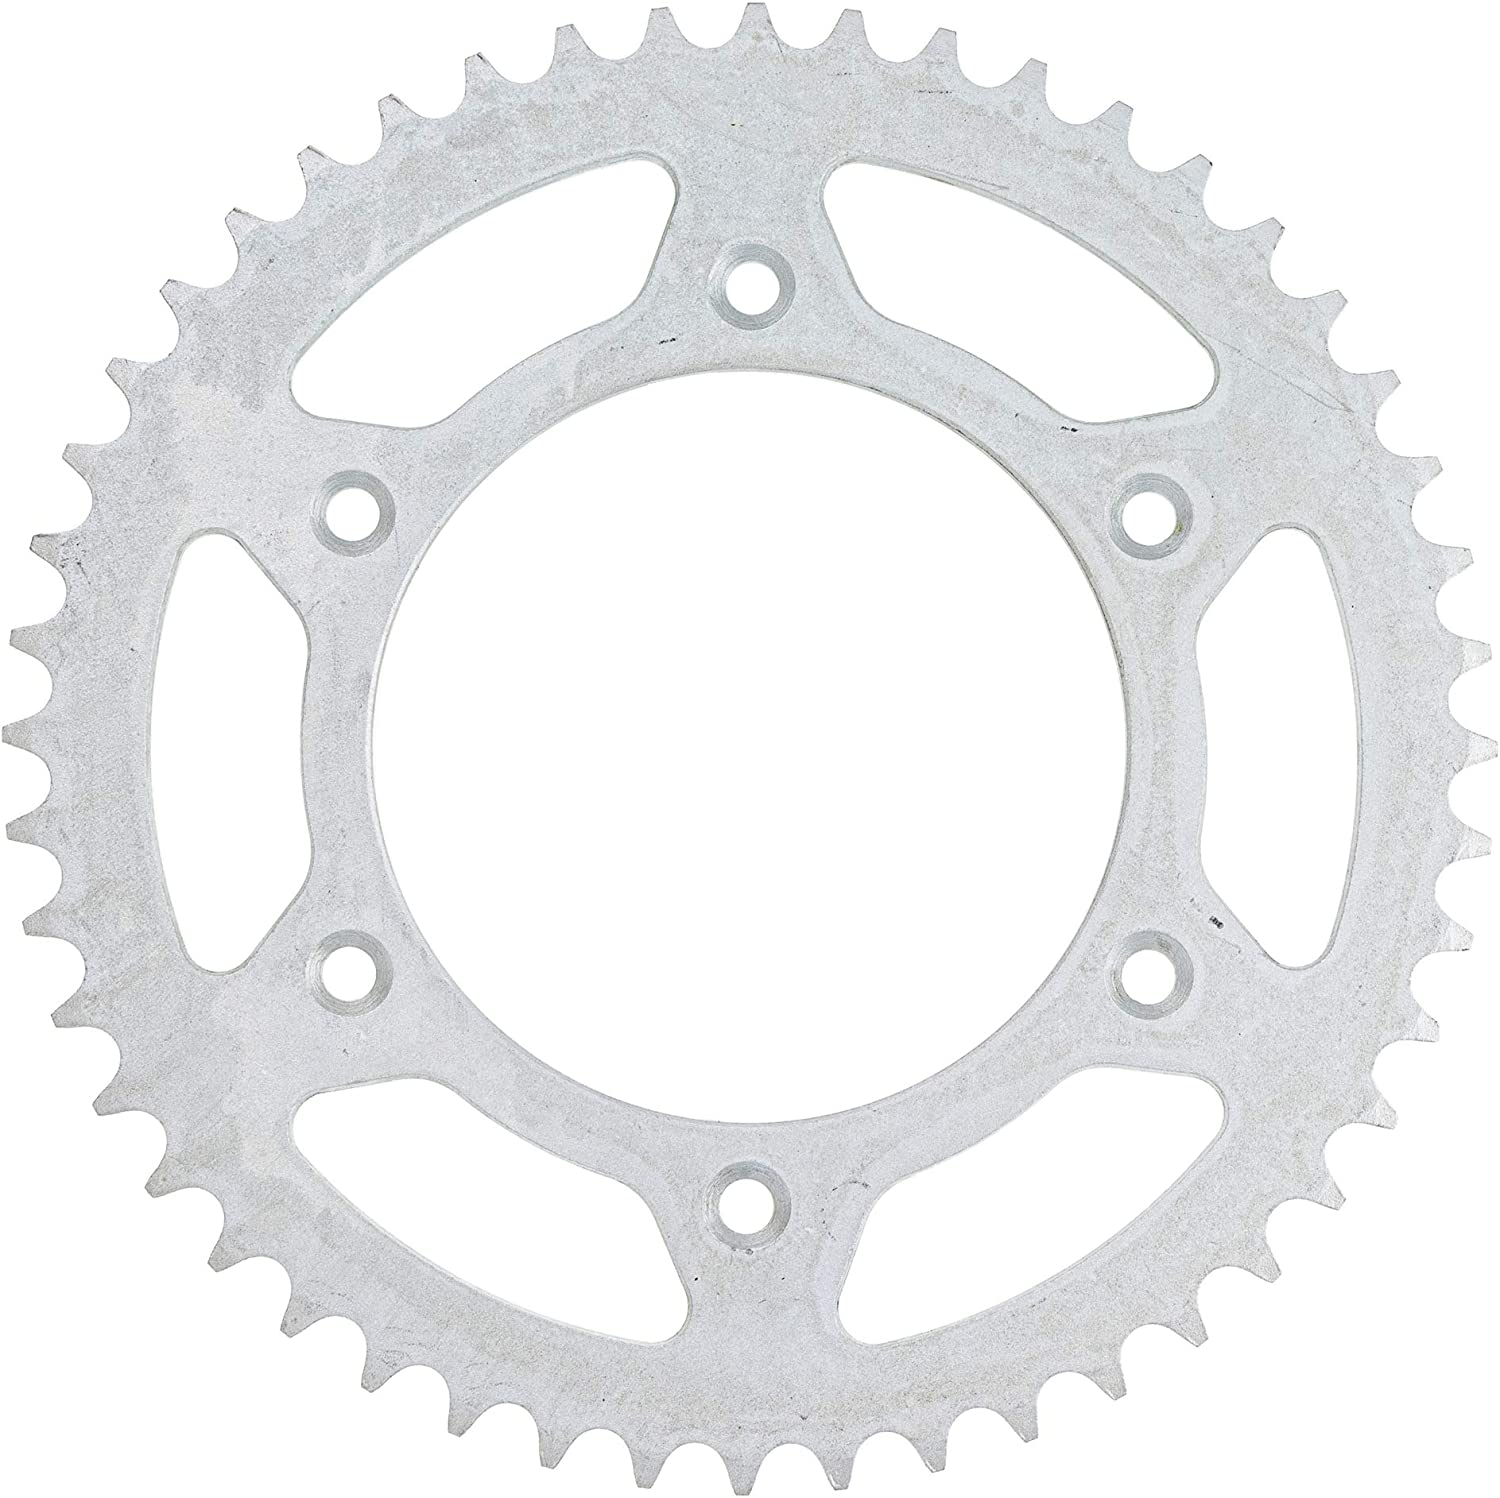 NICHE Drive Sprocket Chain Combo for Honda CRF450R Front 13 Rear 48 Tooth 520V O-Ring 120 Links